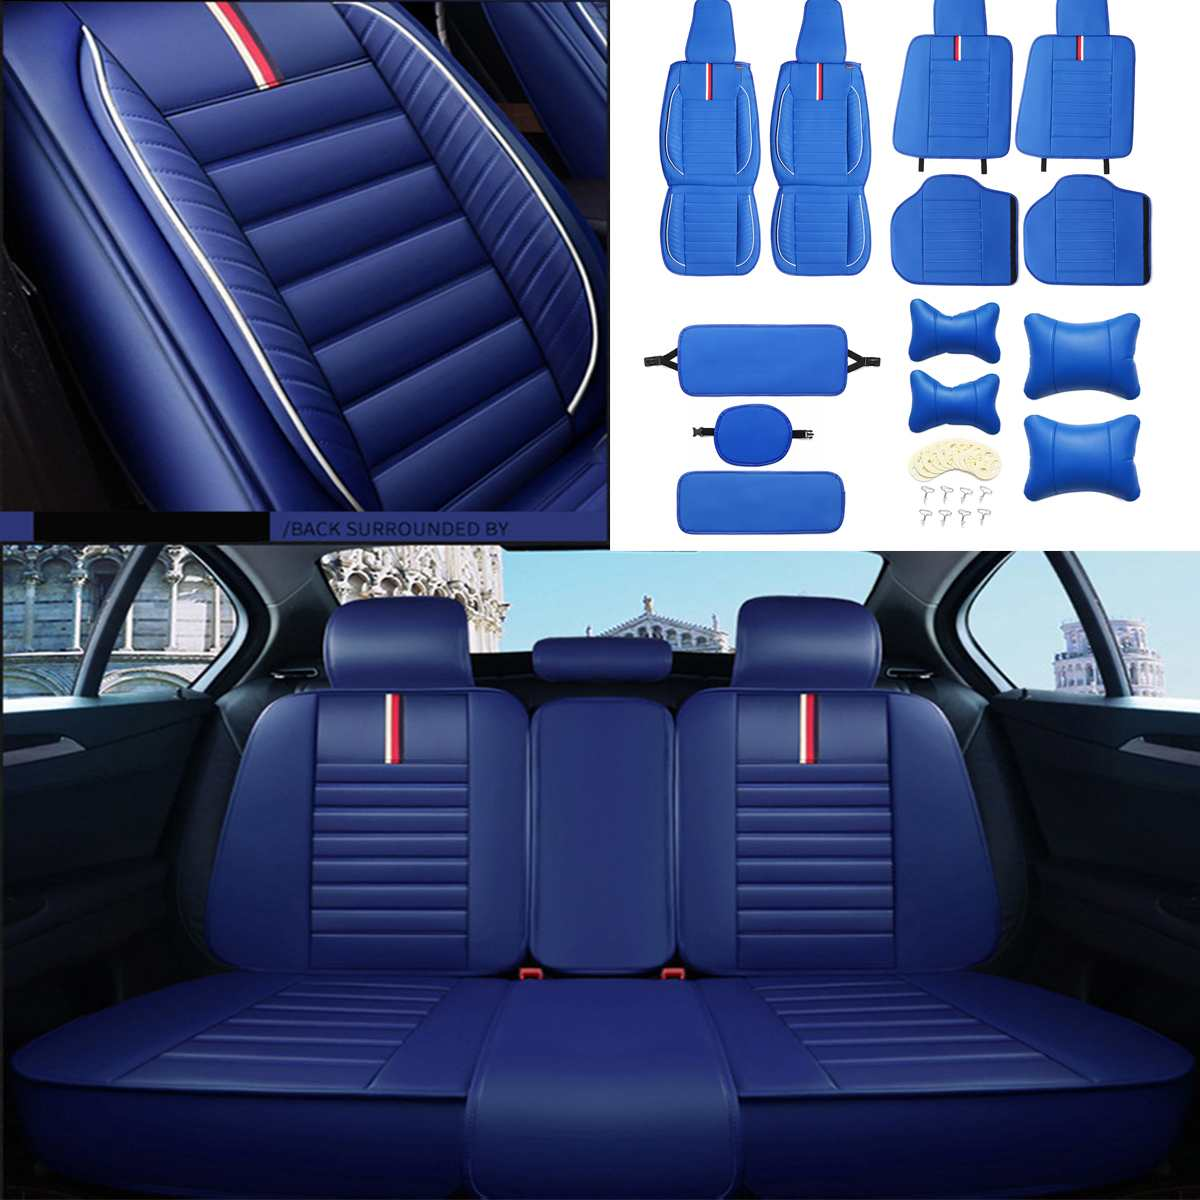 Universal Car Seat Covers Set PU Leather Front & Rear Seat Cushion Headrest Sets For All 5 Seats Car Interior Accessories